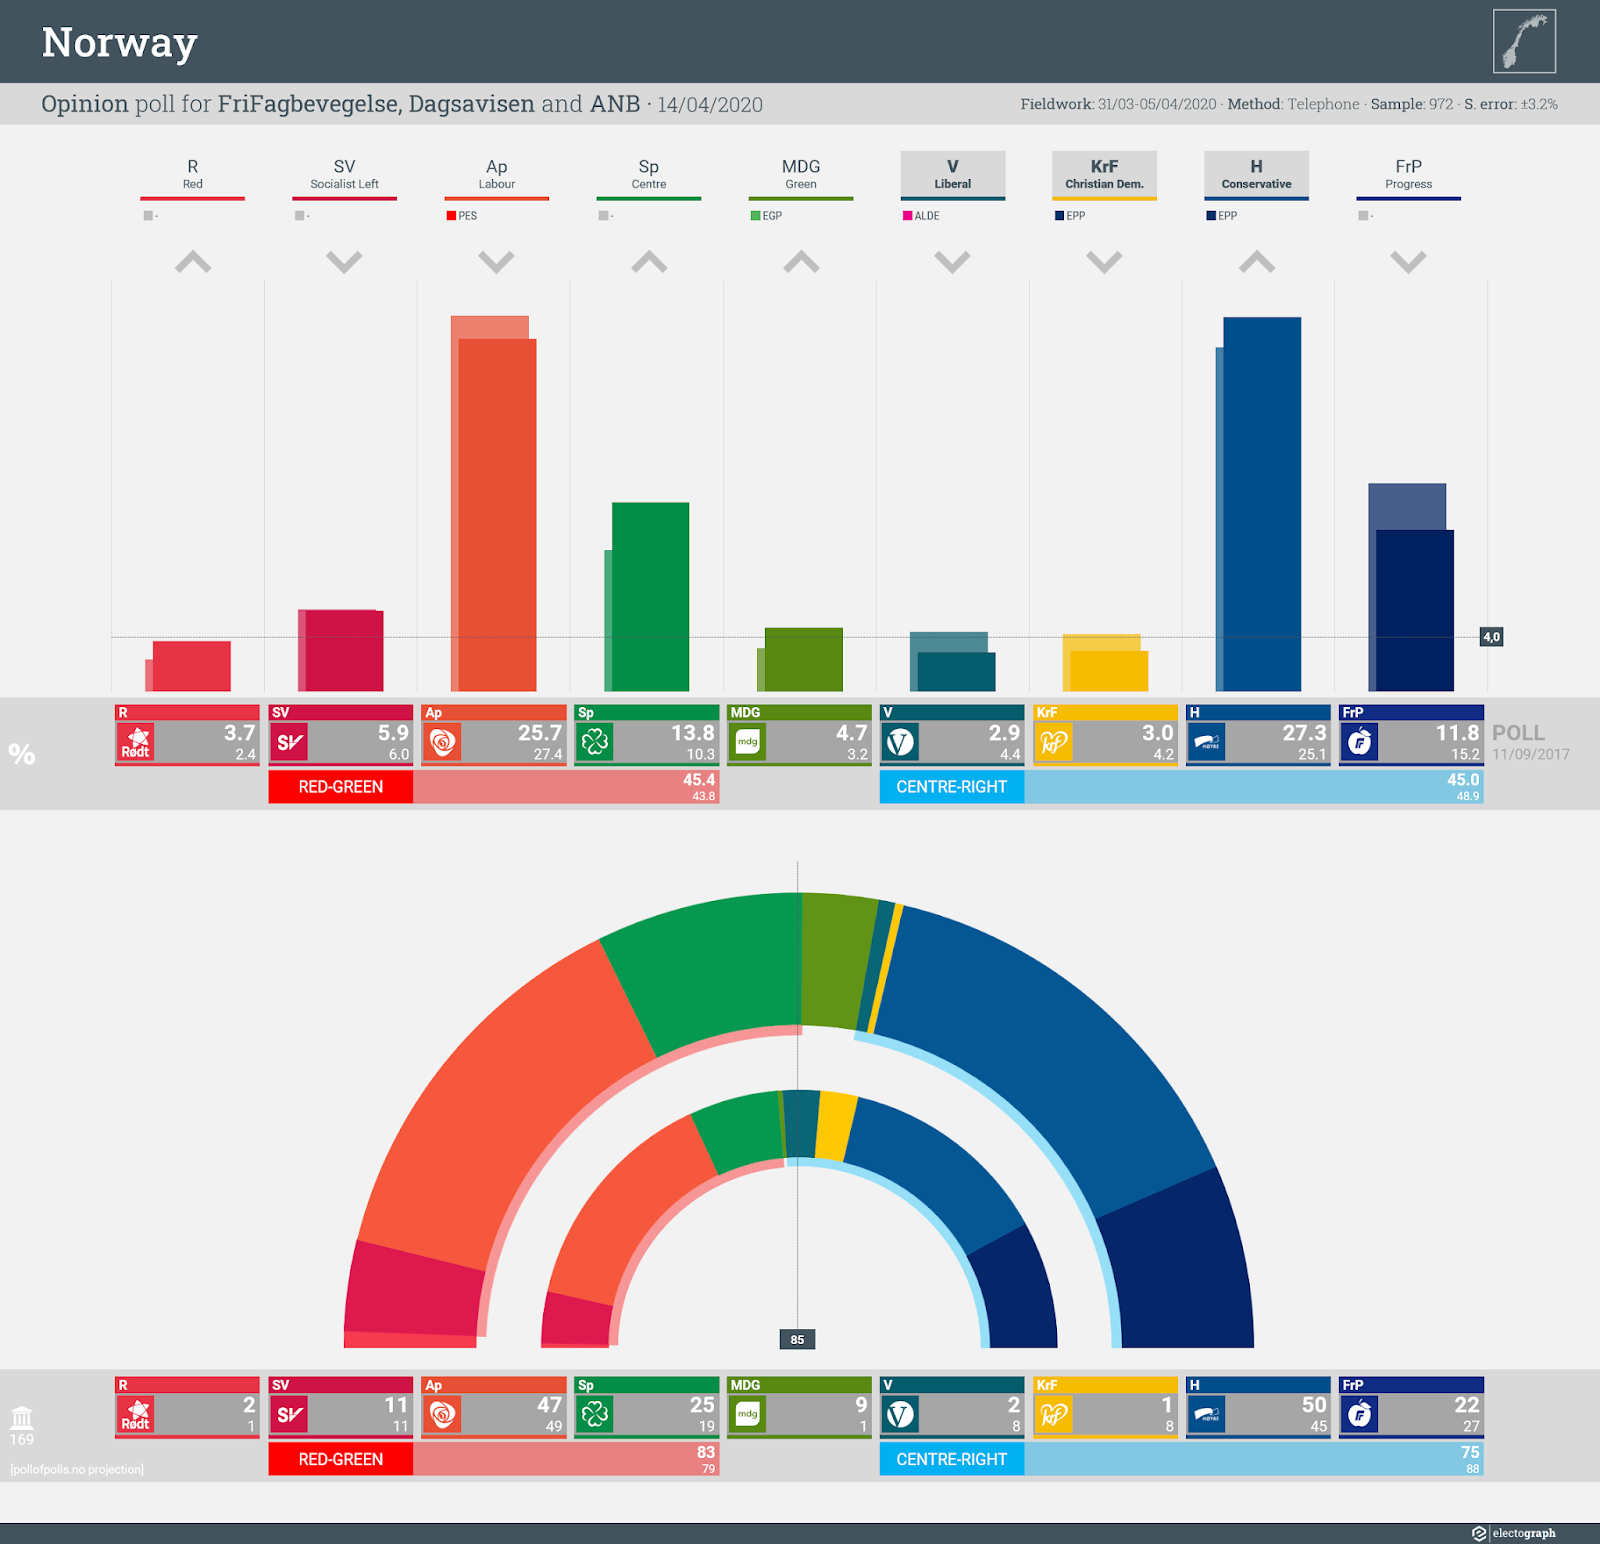 NORWAY: Opinion poll chart for FriFagbevegelse, Dagsavisen and ANB, 14 April 2020